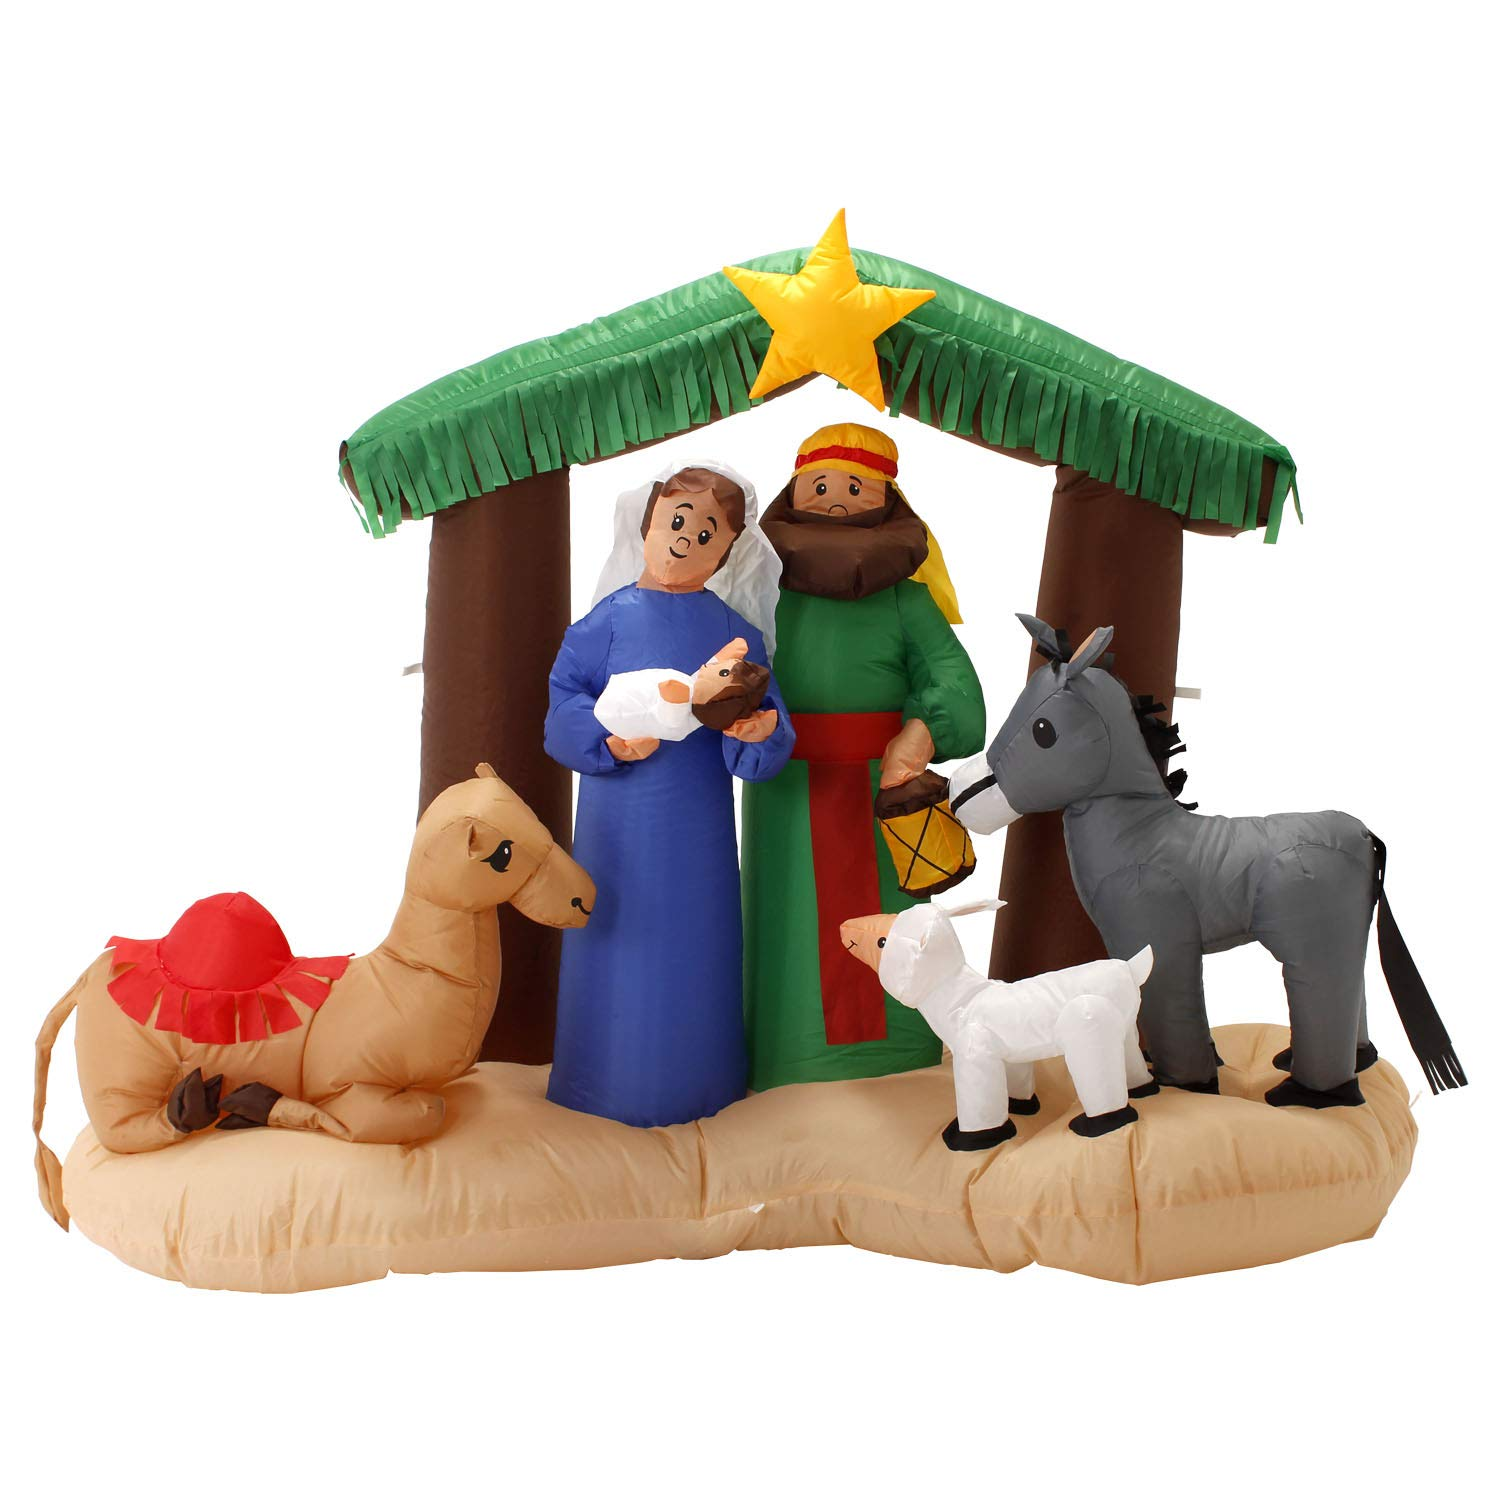 TCP Global Christmas Masters 6 Foot Wide Inflatable Holy Nativity Scene LED Lights Indoor Outdoor Yard Lawn Decoration - Mary, Joseph, Baby Jesus Xmas Holiday Party Blow Up Display